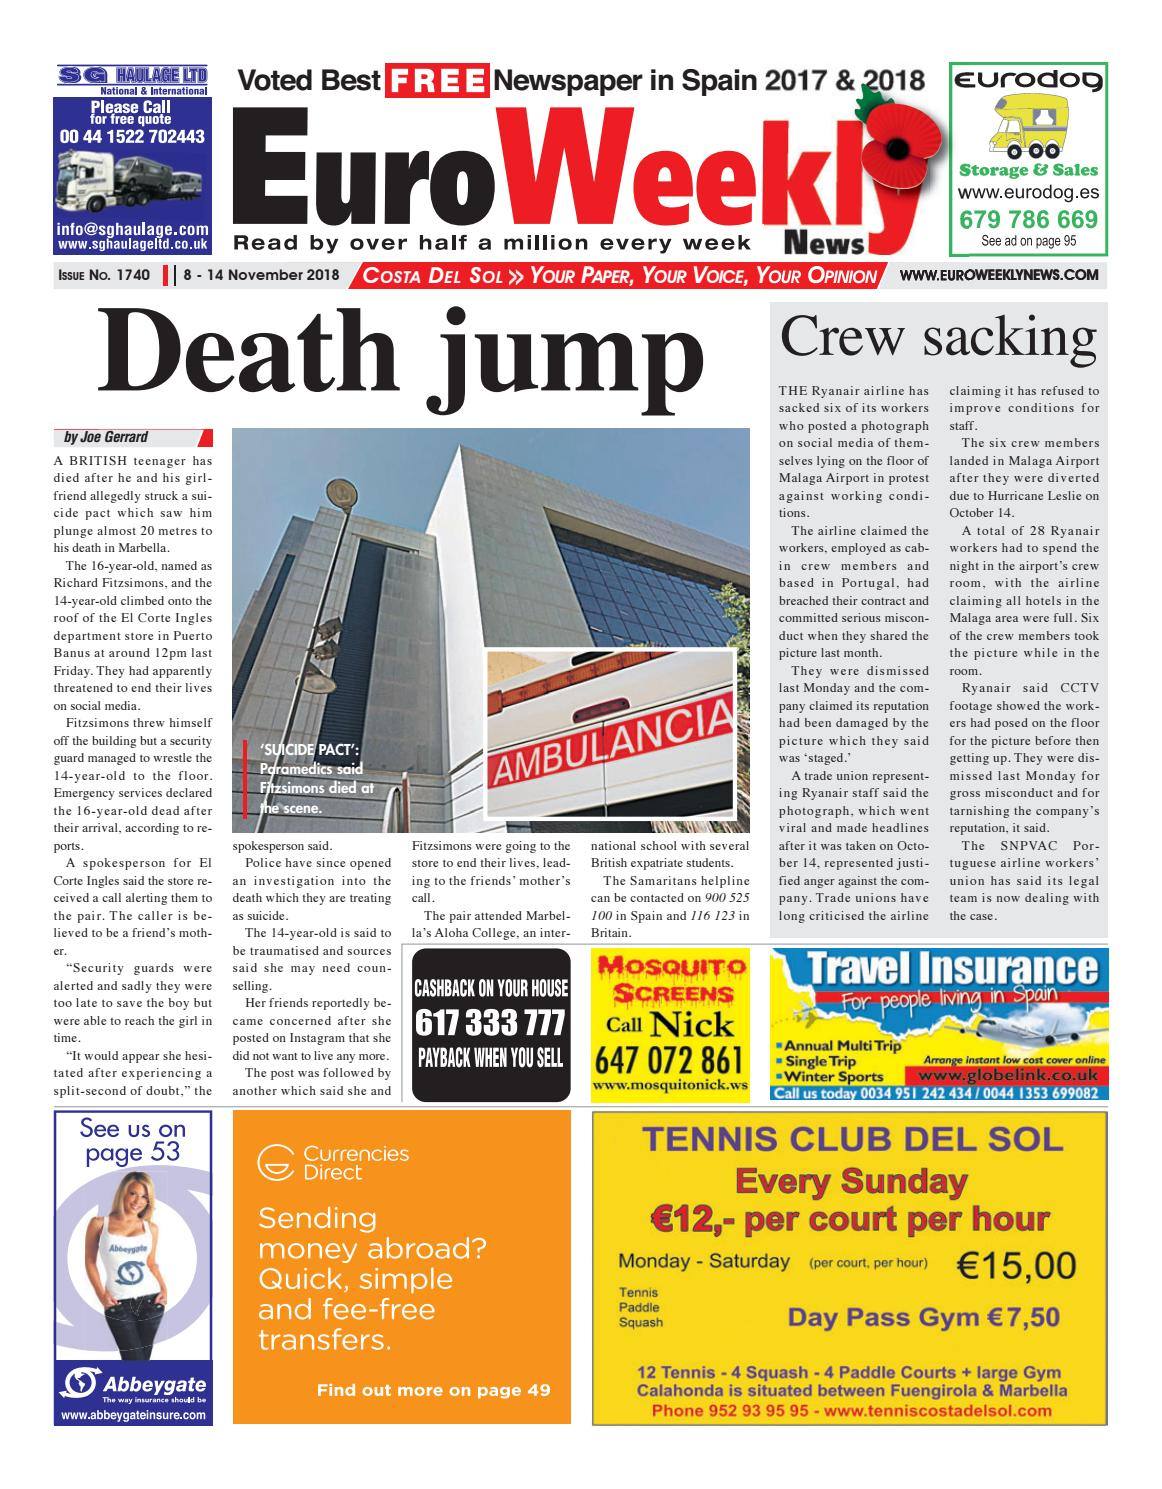 Euro Weekly News Costa Del Sol November 8 14 2018 Issue 1740 By